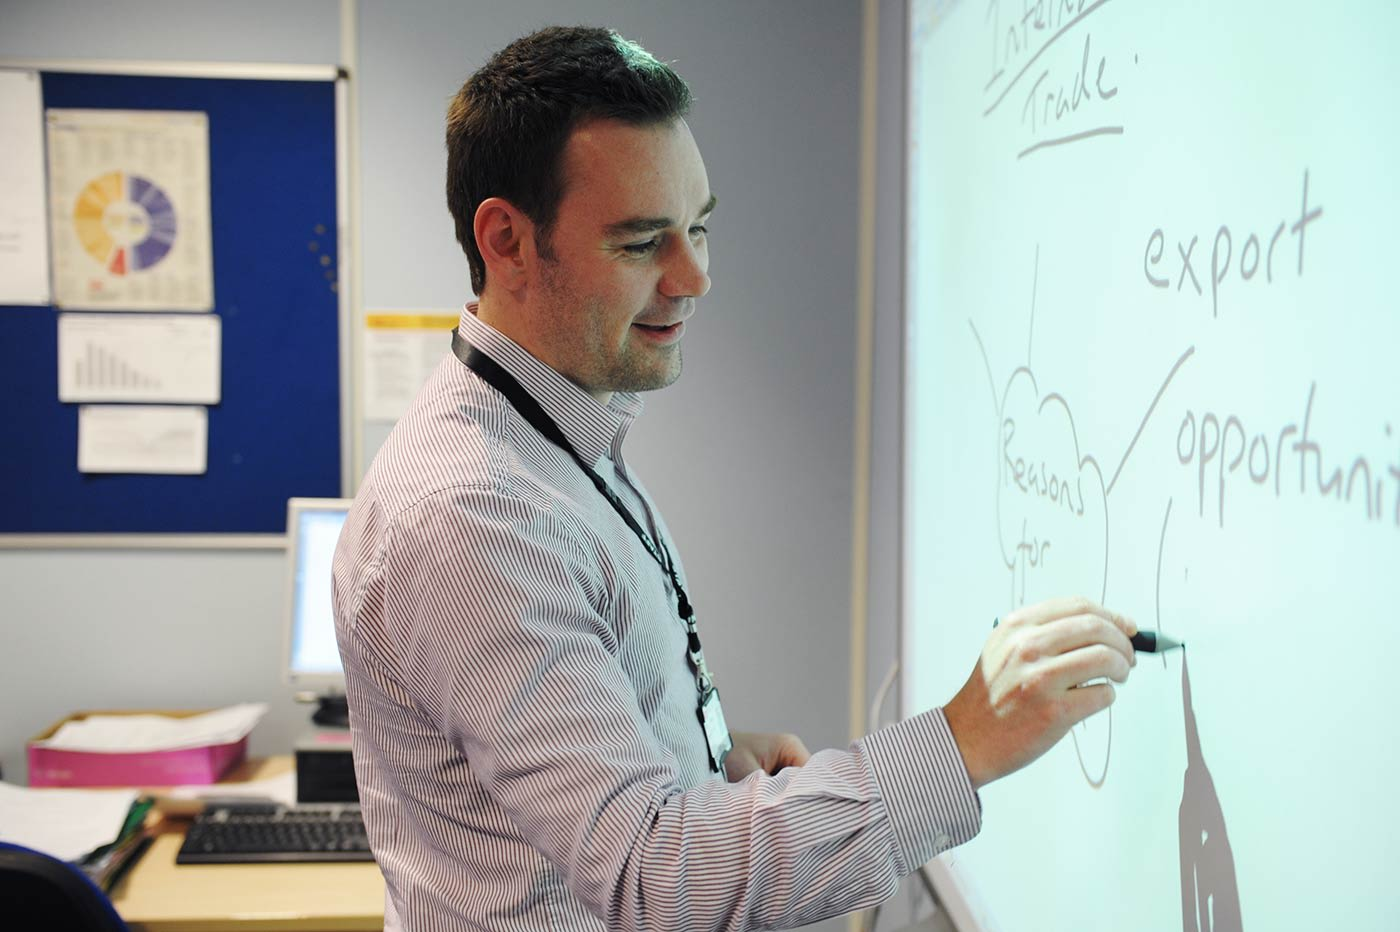 Modern classrooms with interactive learning technologies